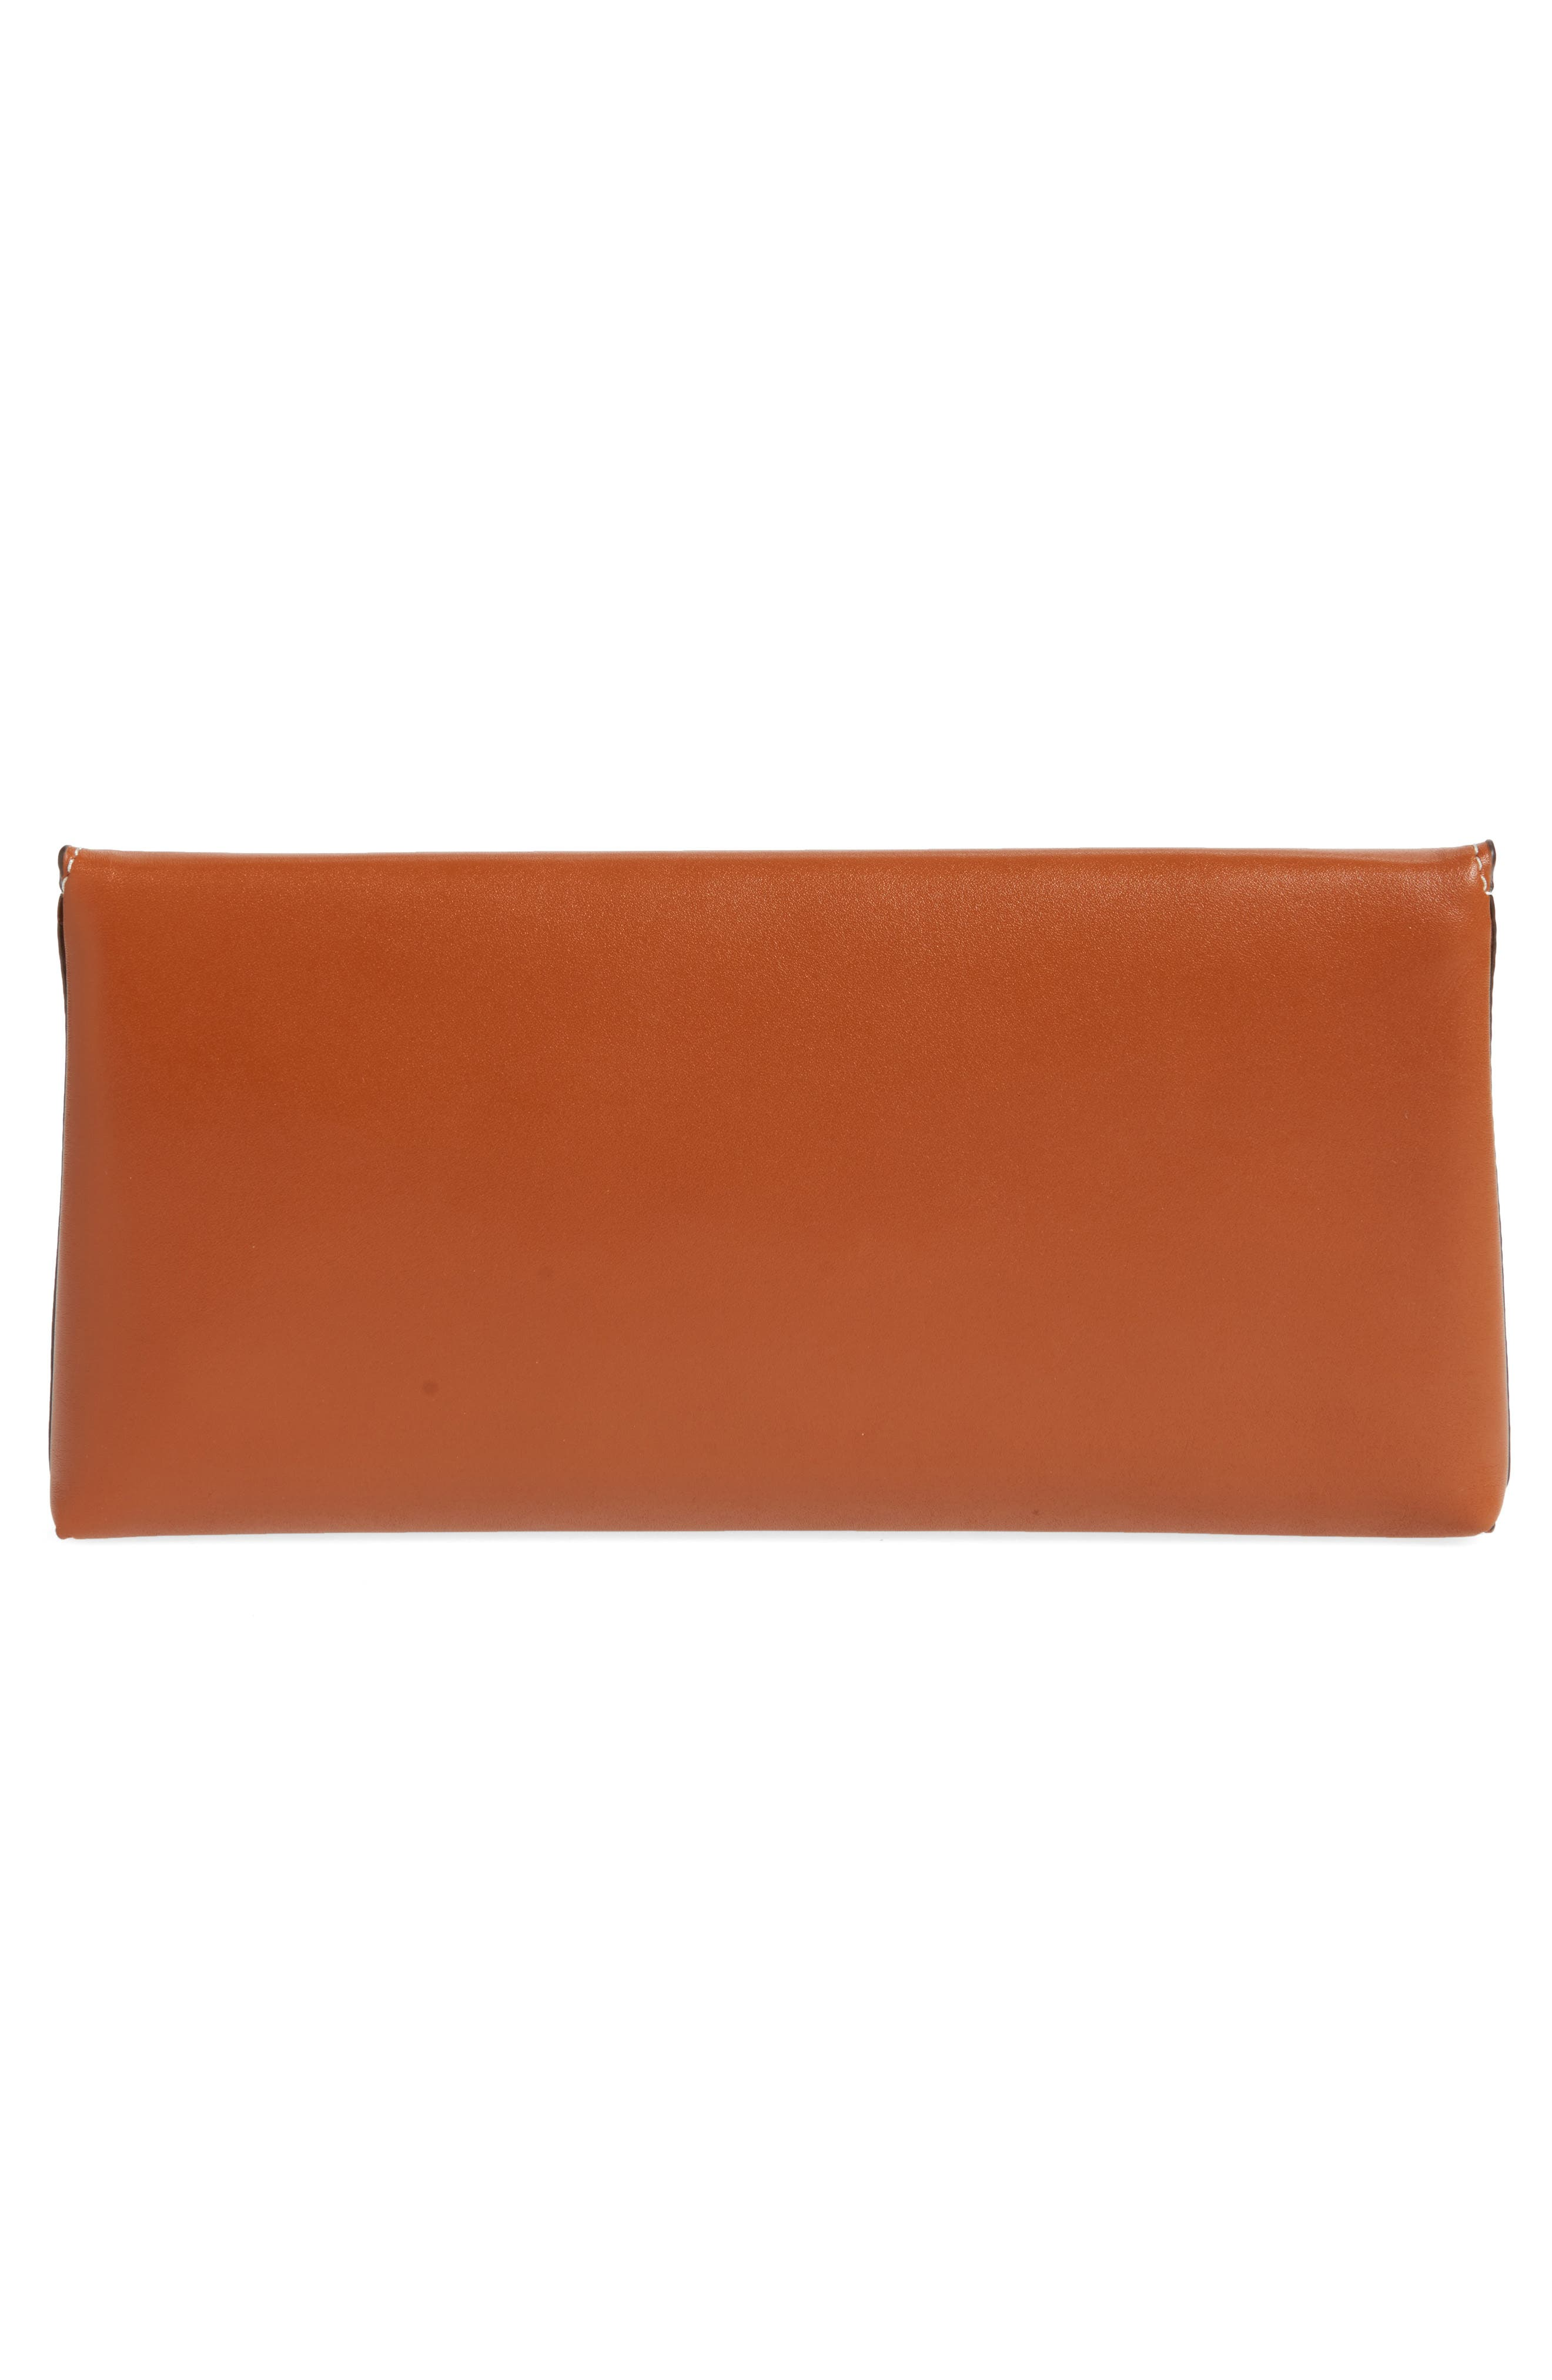 Miller Leather Clutch,                             Alternate thumbnail 8, color,